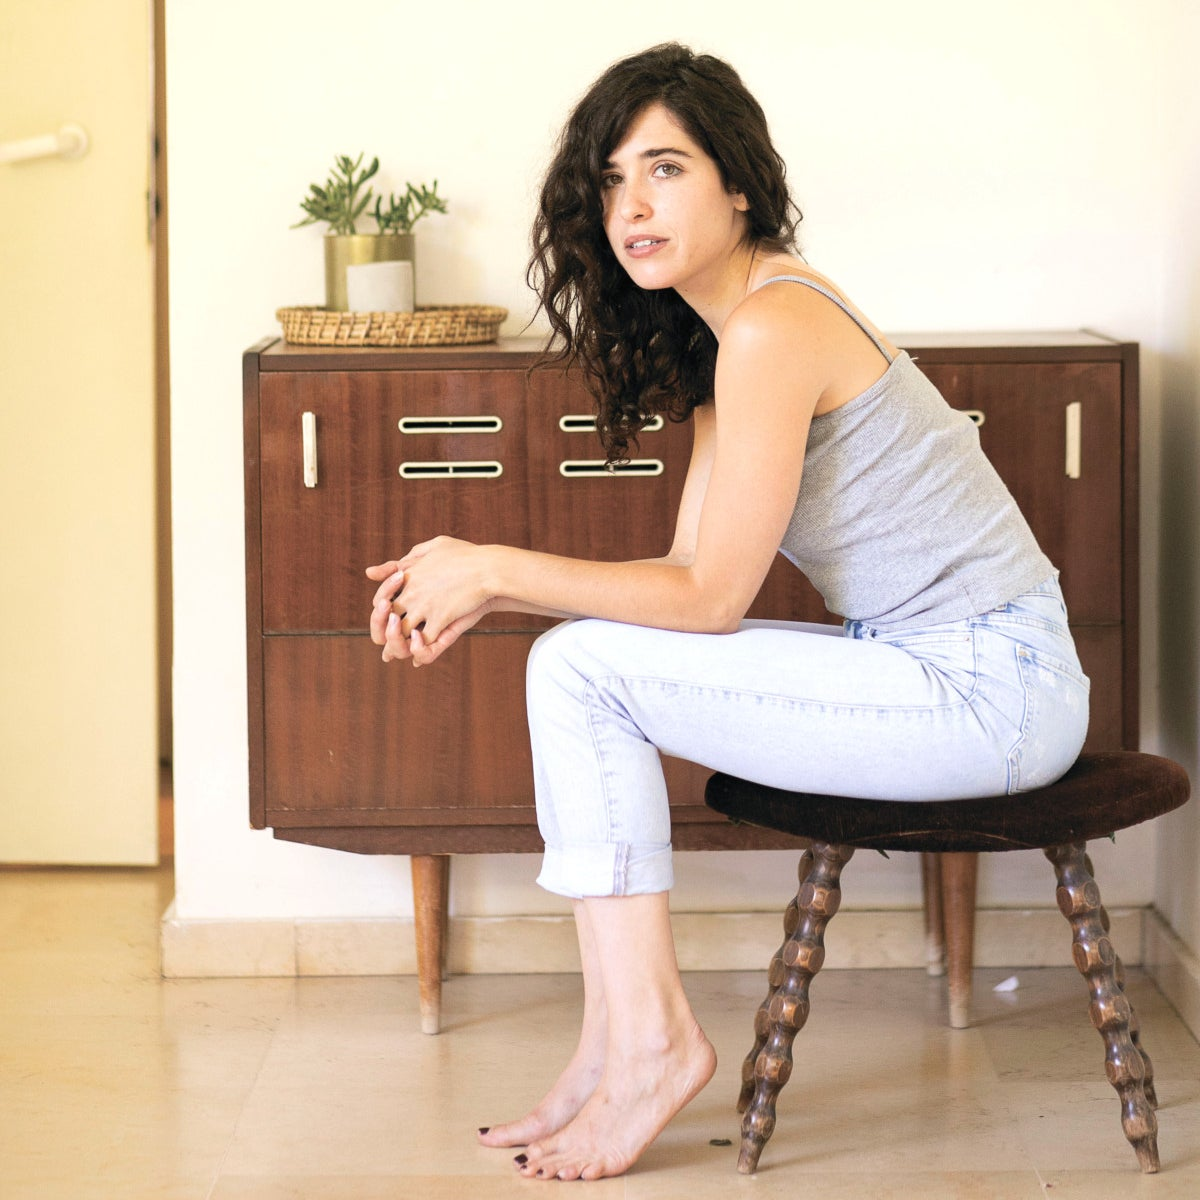 """Cameri Theater actress Avigail Harari, who is playing the female lead in the play """"All the Rivers,"""" based on Israeli author Dorit Rabinyan's controversial book """"Borderlife,"""" in July 2020"""